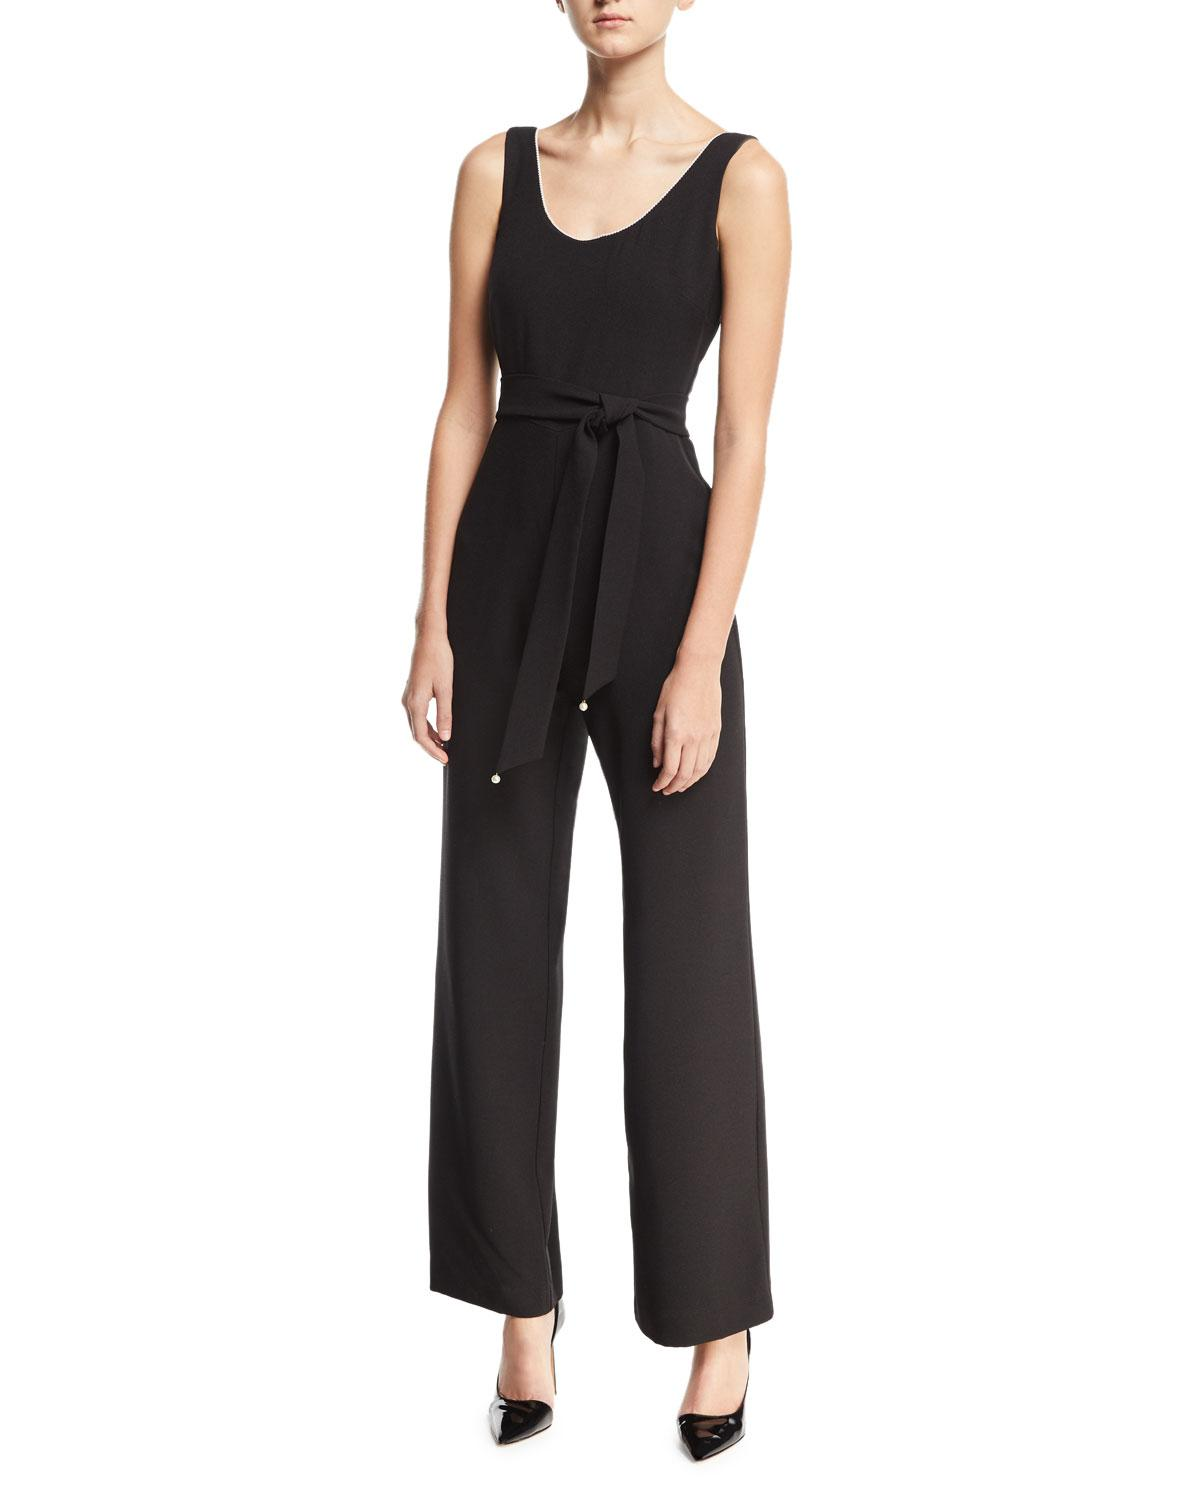 a315e294ba4a Lyst - Karl Lagerfeld Sleeveless Belted Jumpsuit in Black